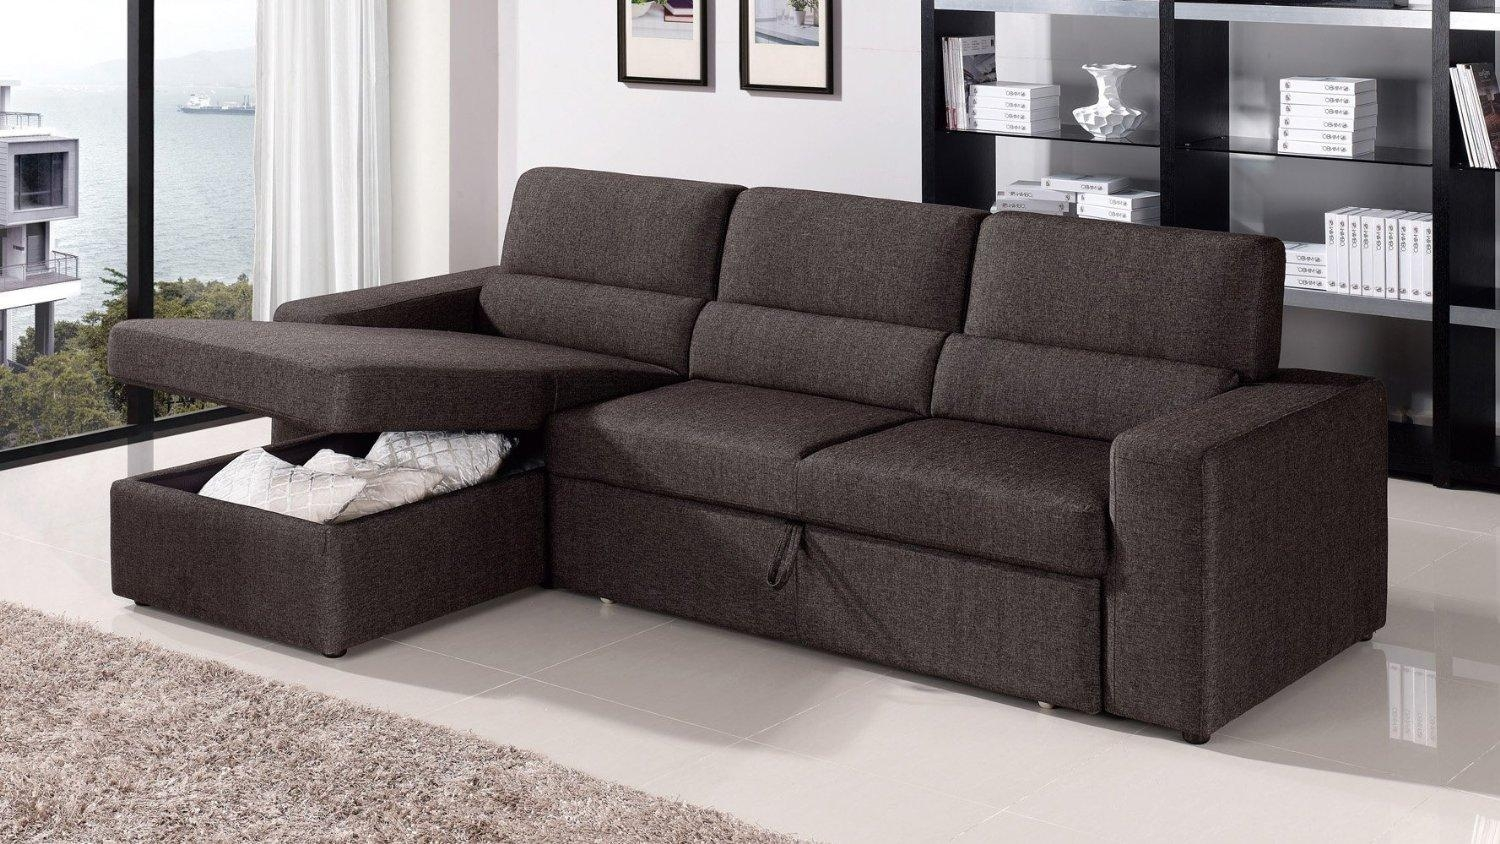 sofa lounger with pull out bed thomasville ashby 20 43 choices of beds storage chaise ideas